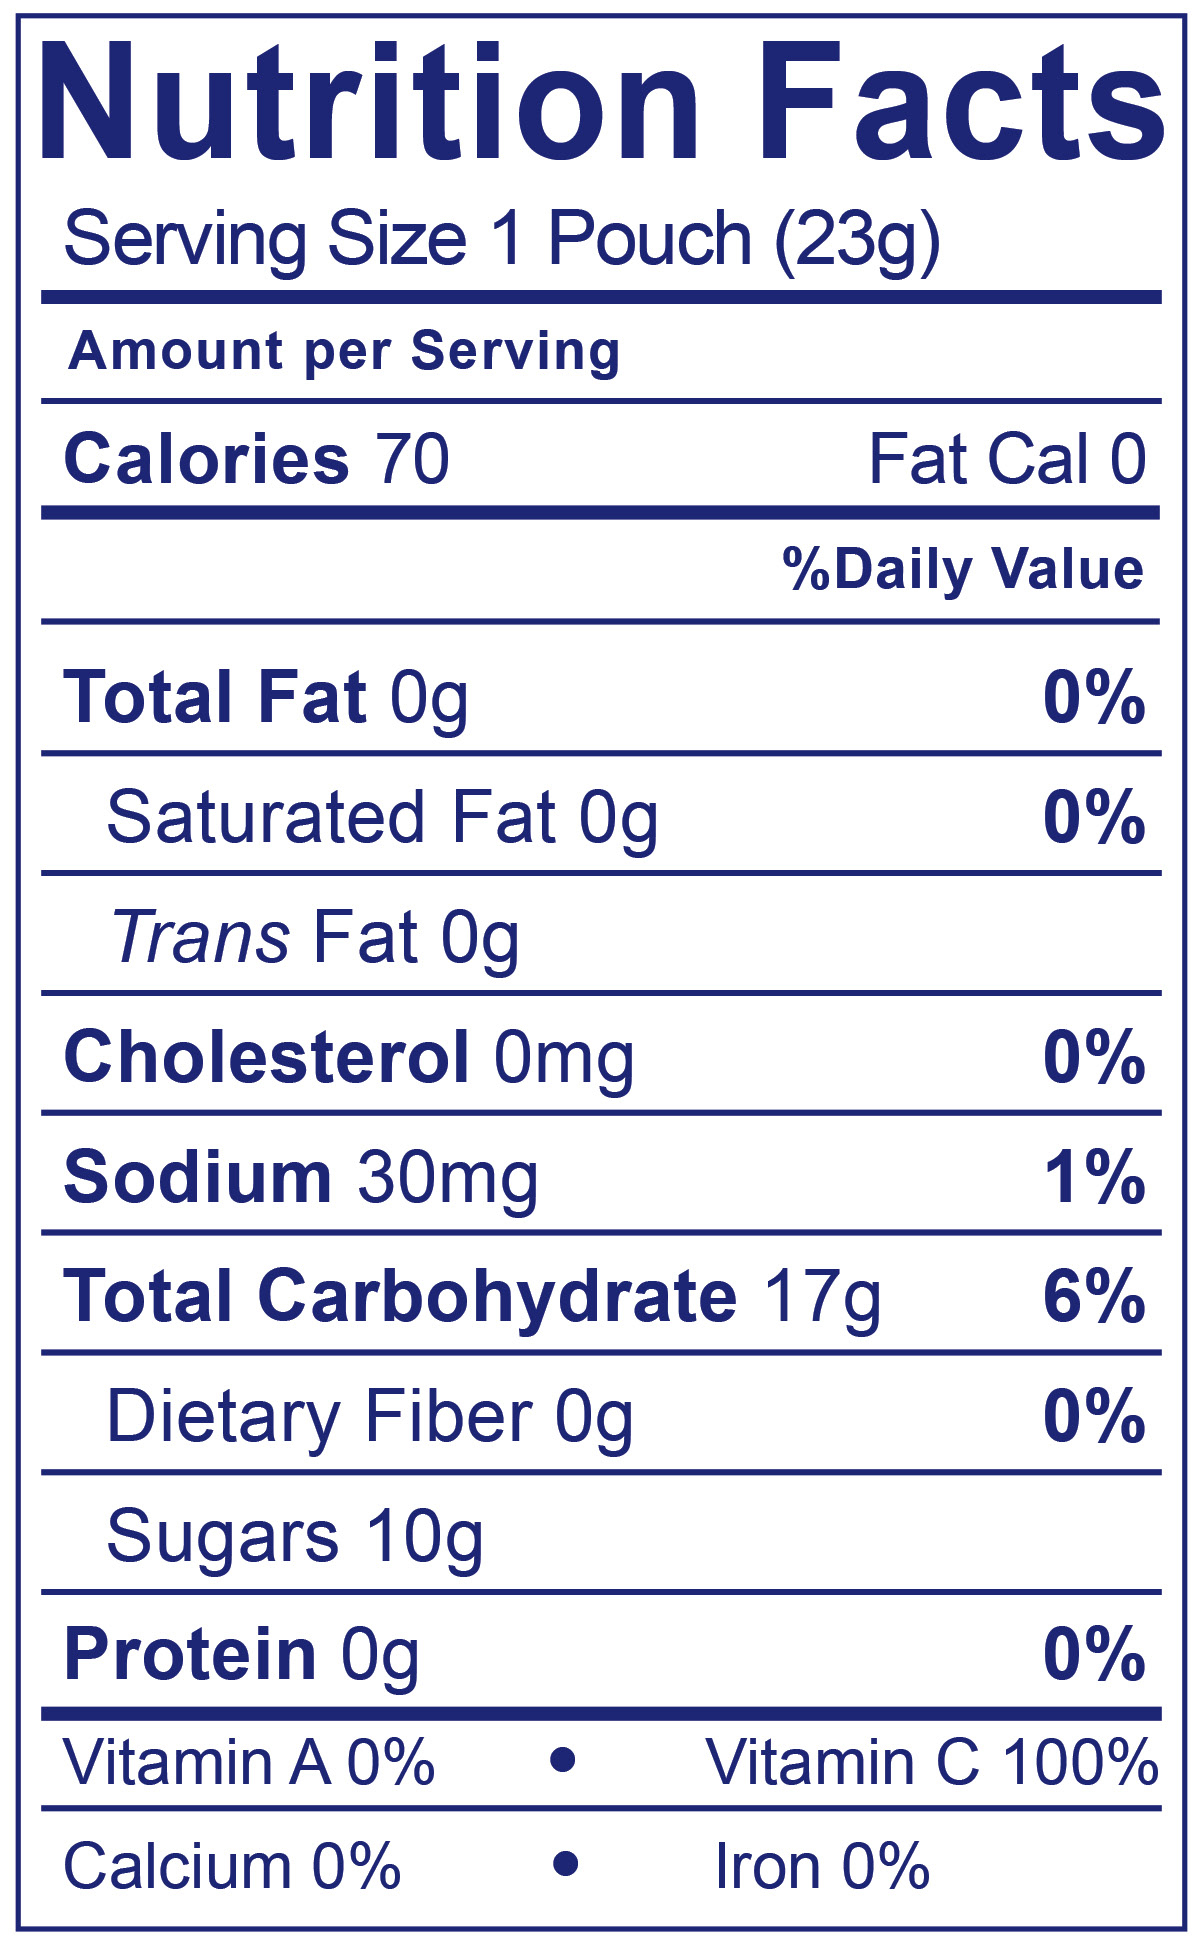 Organic Fruity Cows Strawberry - Nutrition Facts